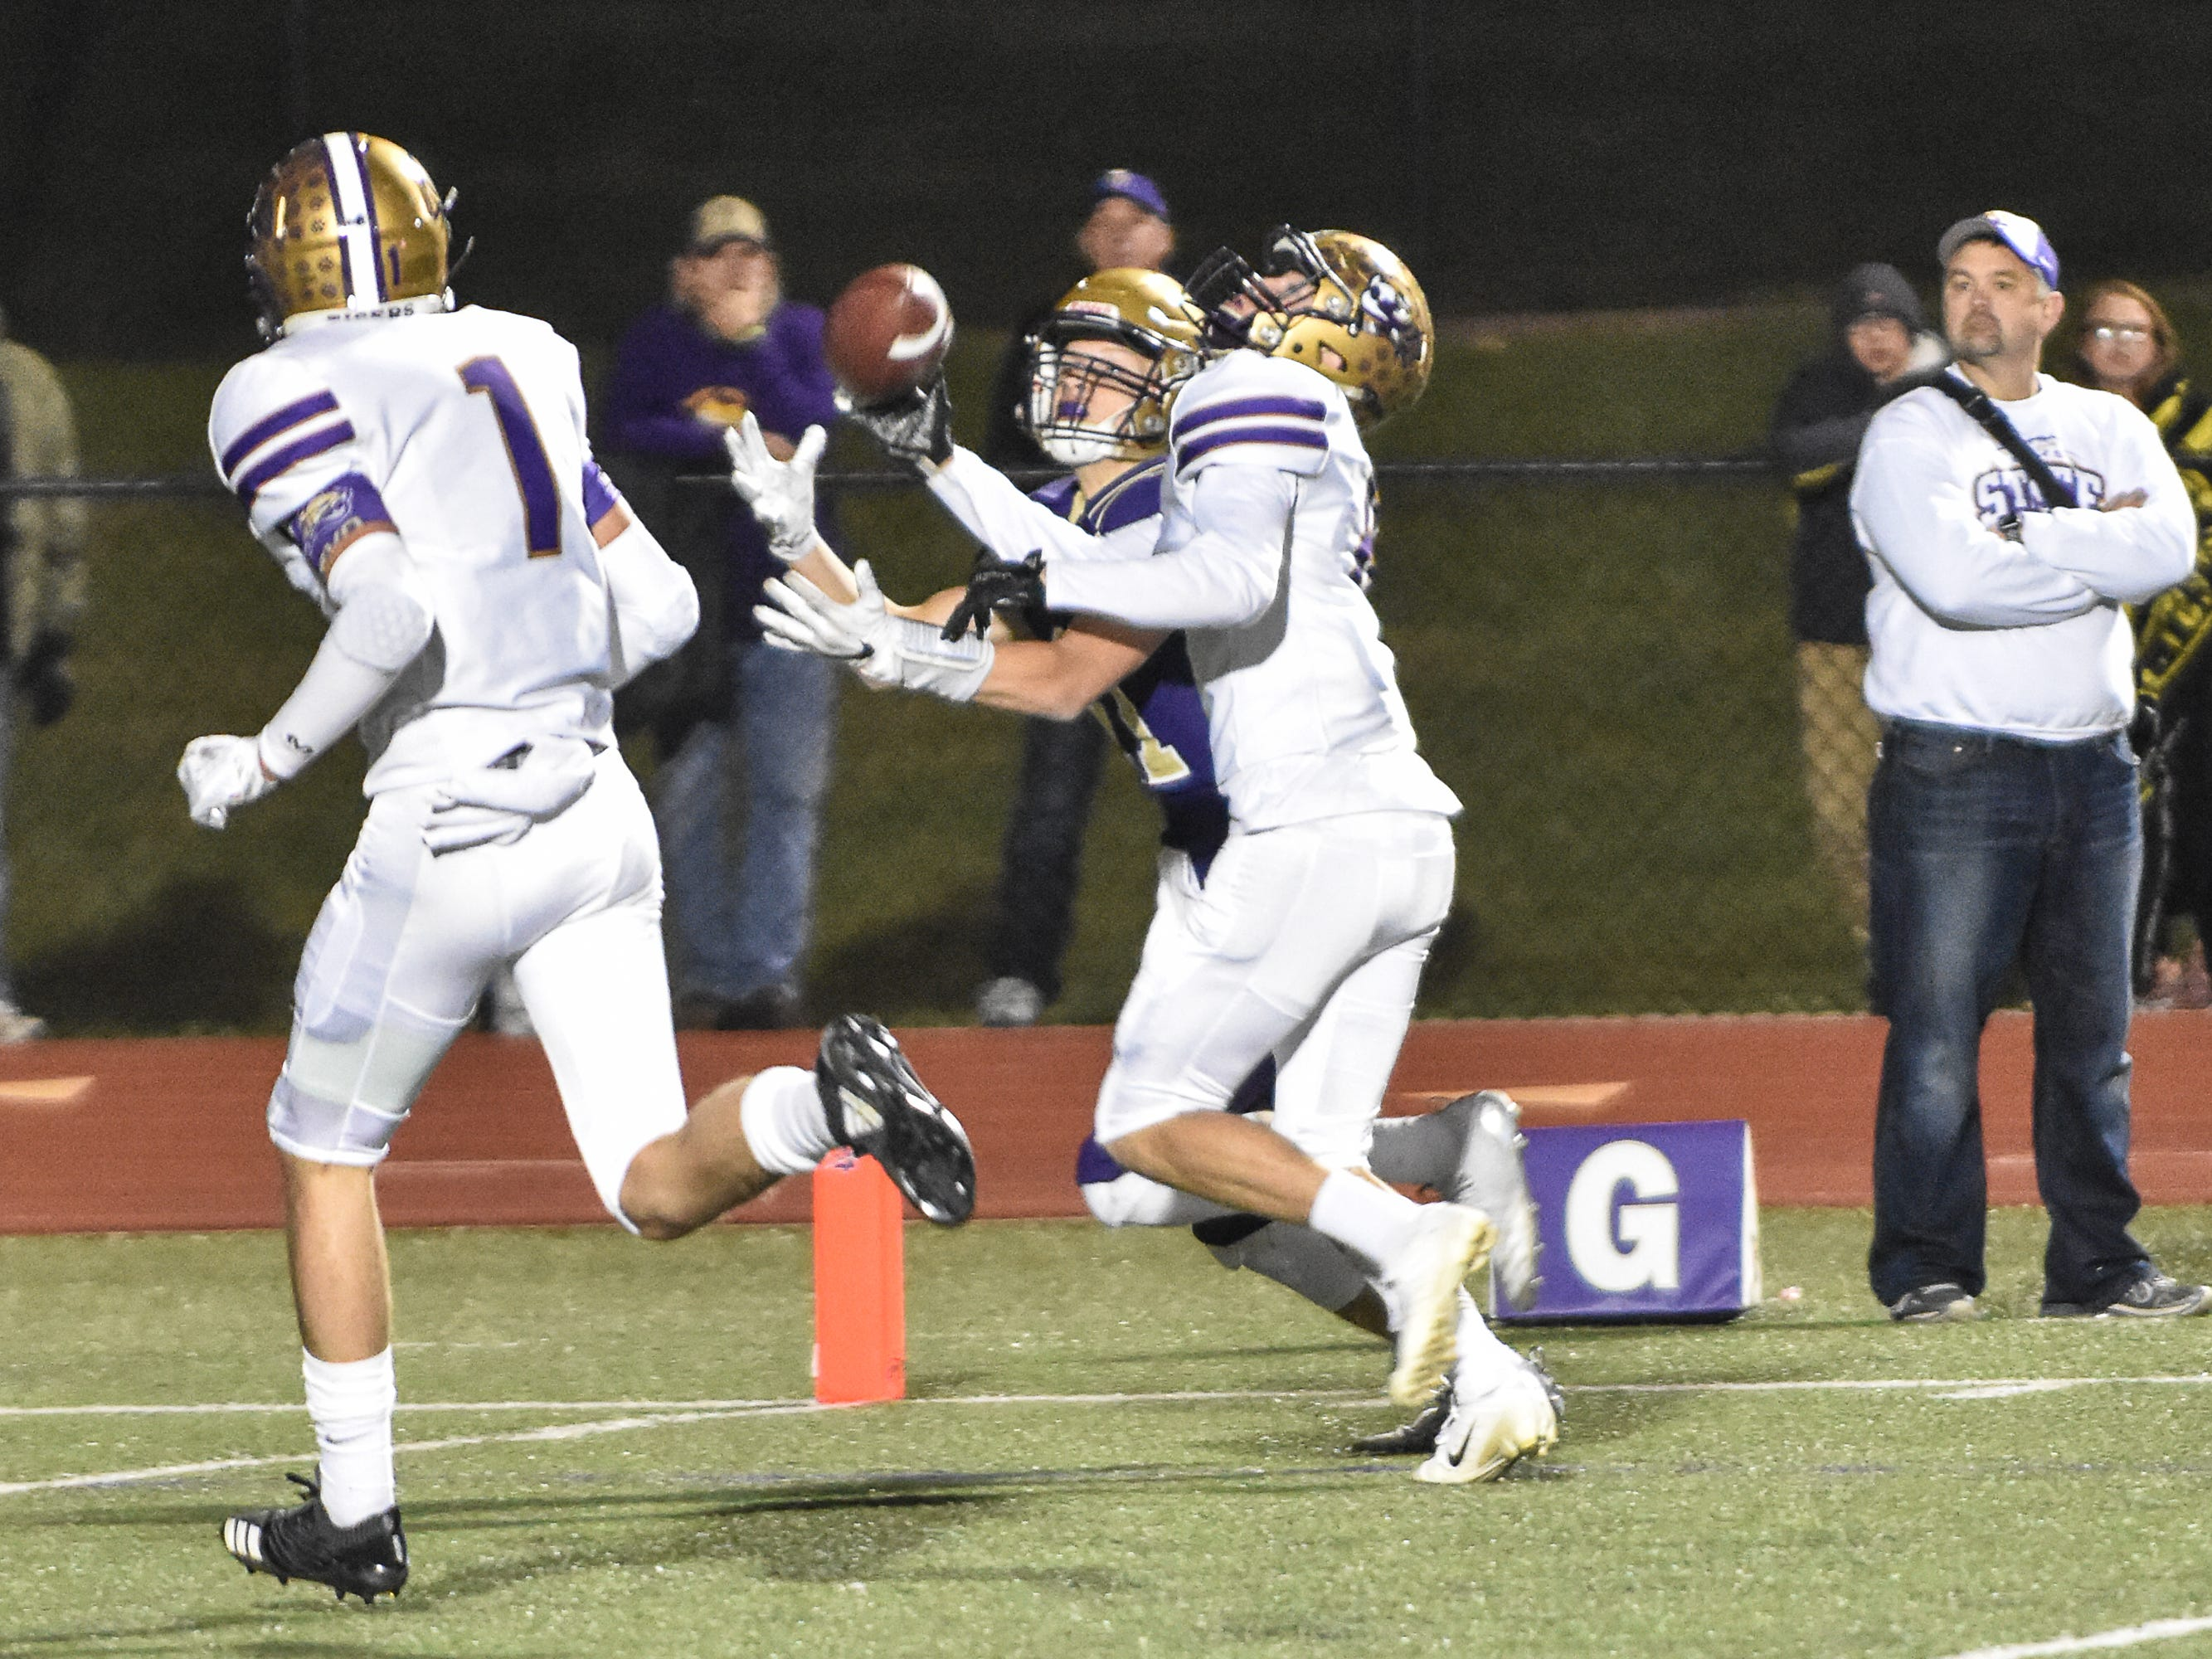 Spencer's Kyle Morony blocks a pass to Norwalk's Zach Marker during a first-round playoff game Friday in Norwalk. Spencer ended Norwalk's season Oct. 26, 2018, with a 24-20 win in the first round of the Class 3A playoffs.